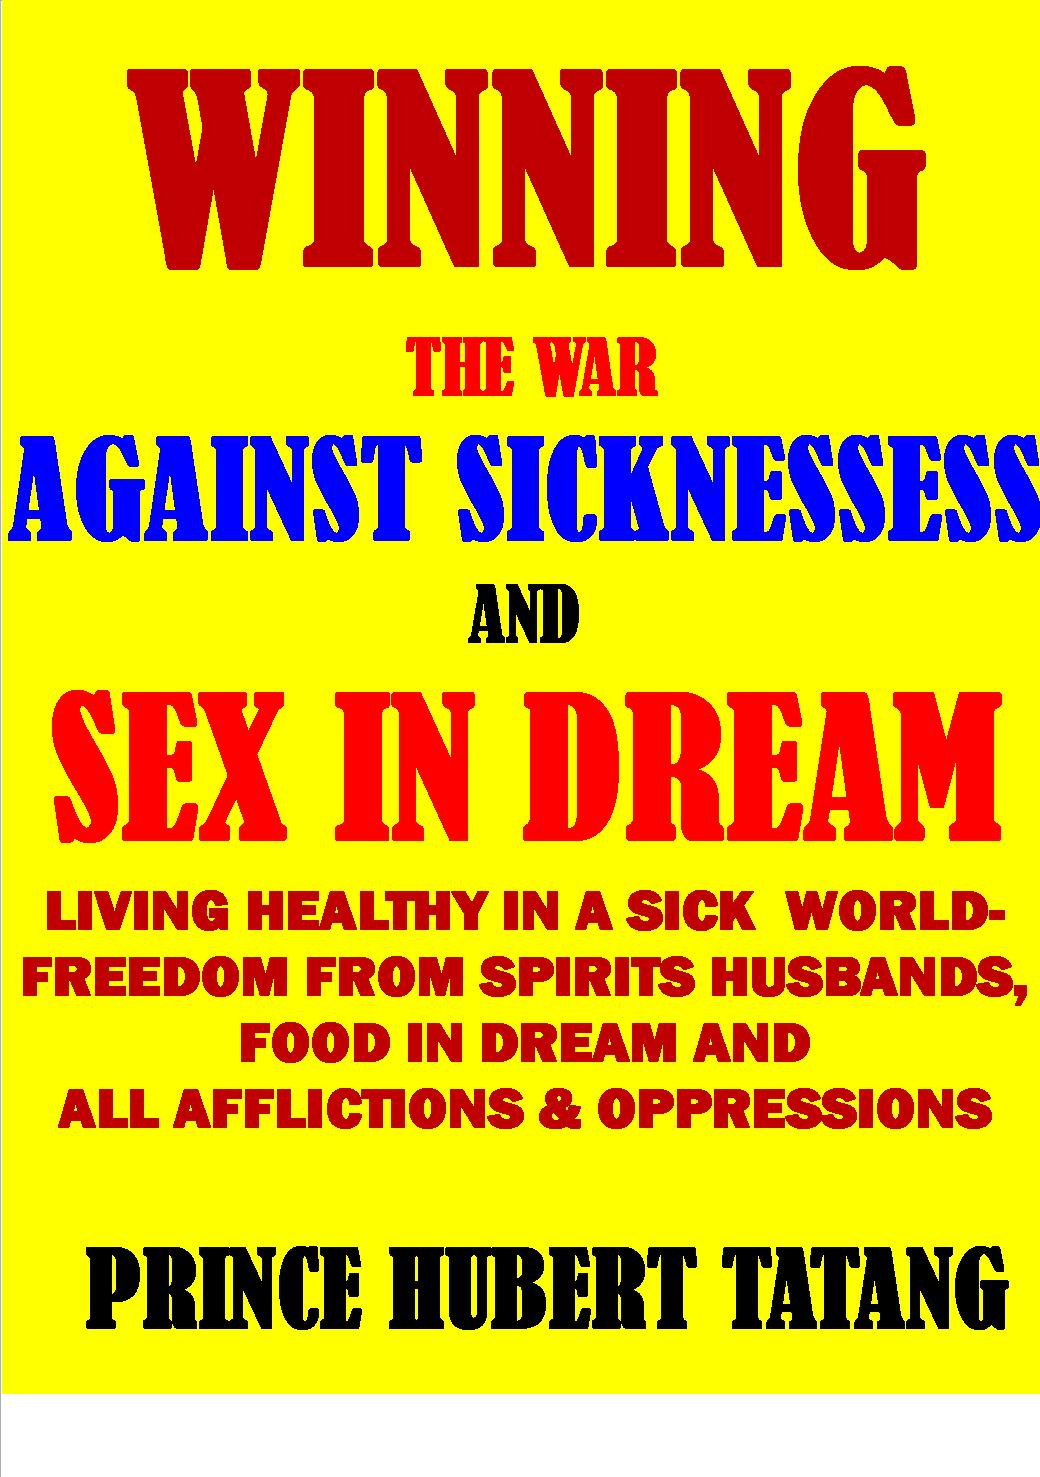 WINNING THE WAR AGAINST SICKNESSES, INFIRMITIES and SEX in the Dream  You  deserve a better living   , an Ebook by D  HUBERT R  TATANG